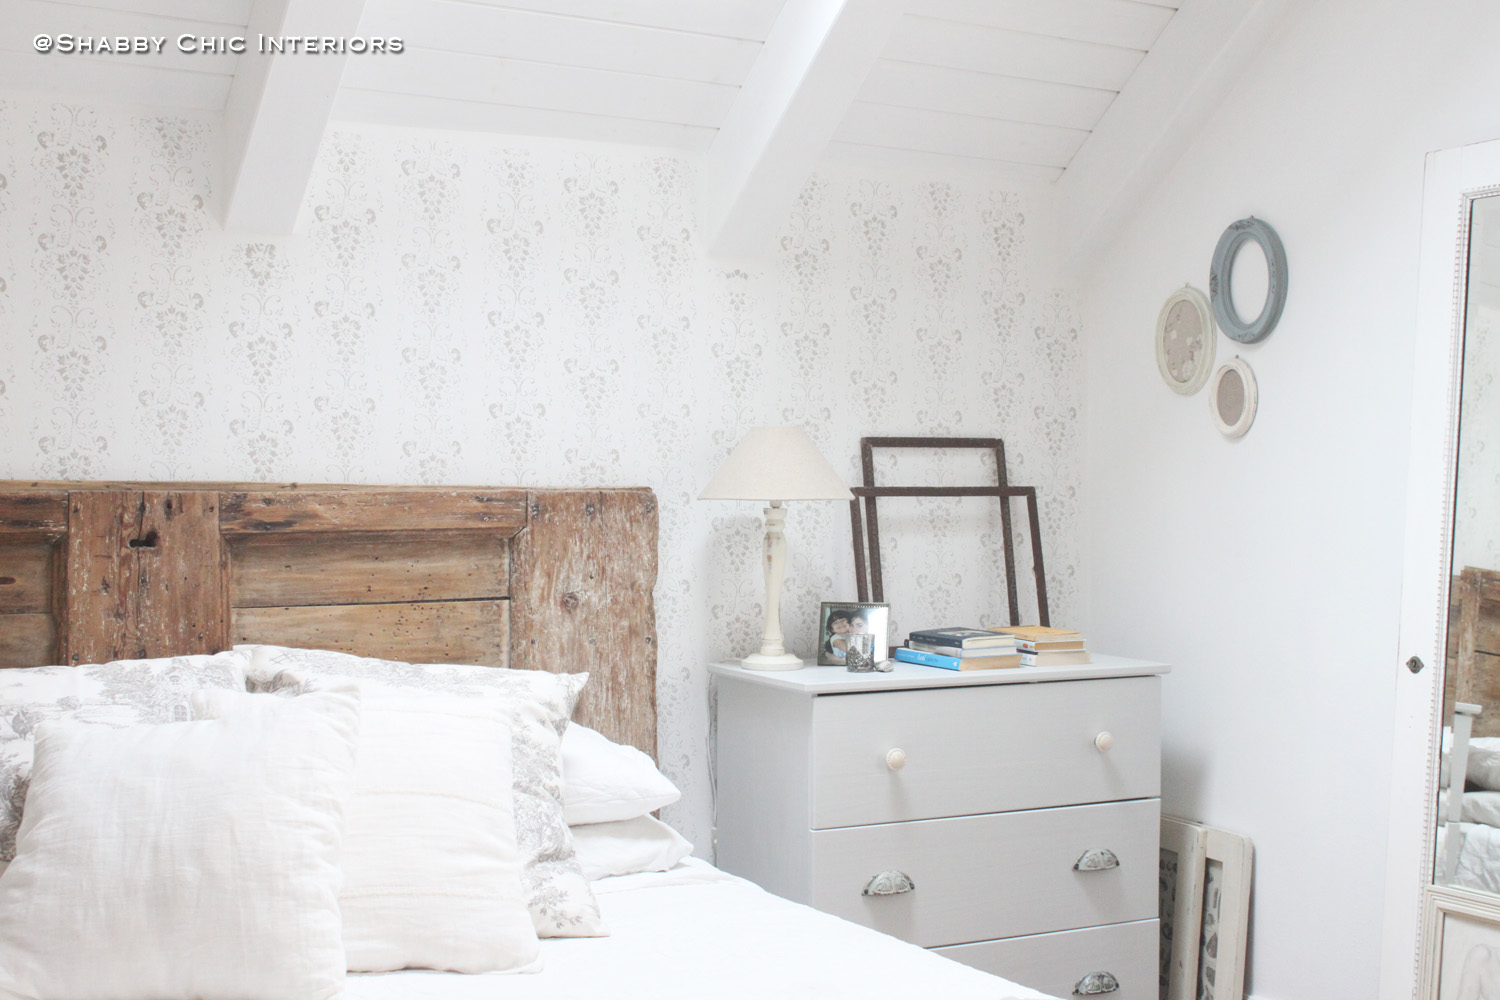 Pittura Pareti Shabby Chic : Rullo decorativo come abbellire una parete shabby chic interiors